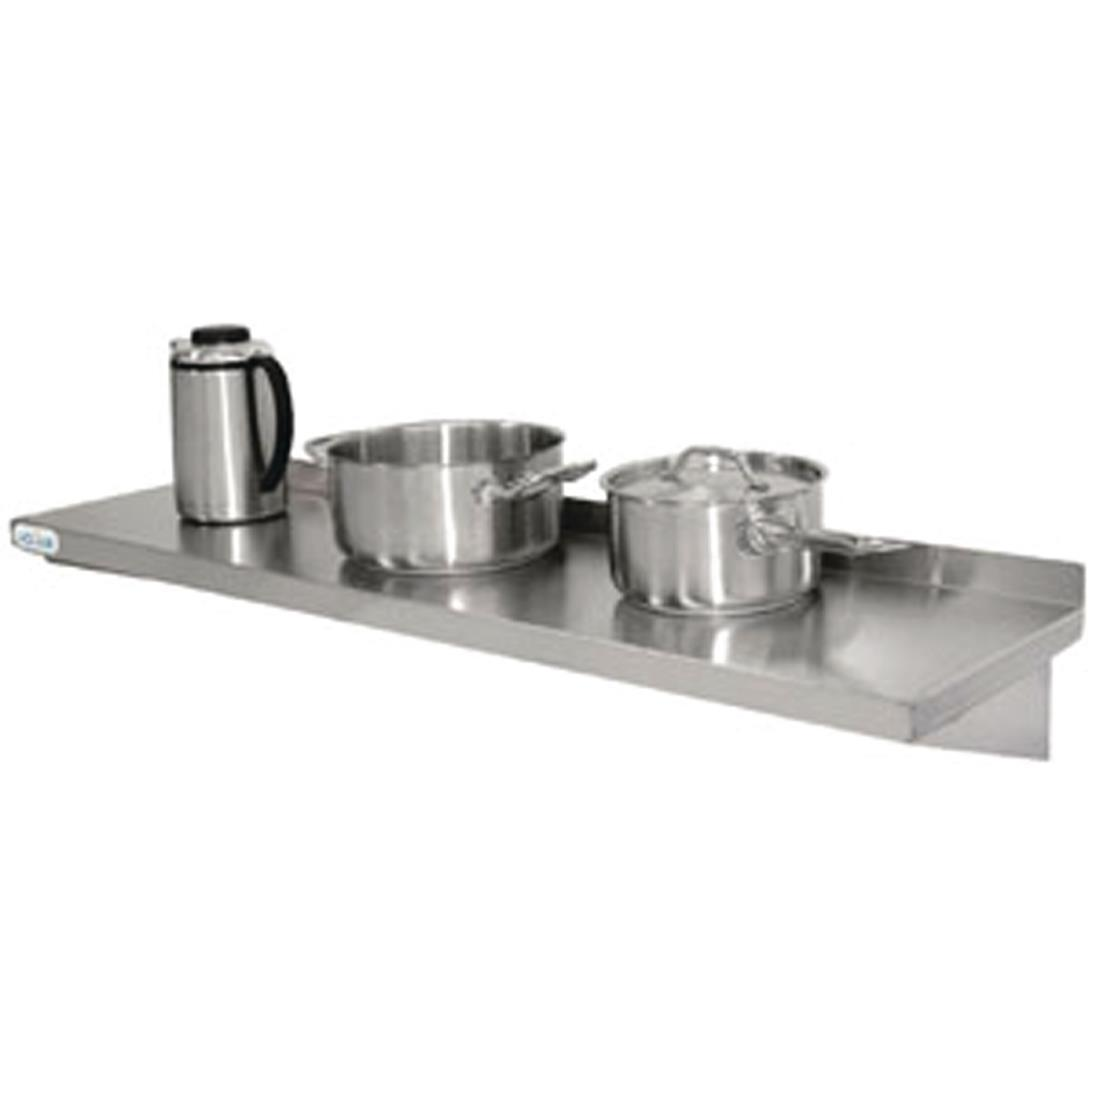 Y752 - Stainless Steel Kitchen Shelf